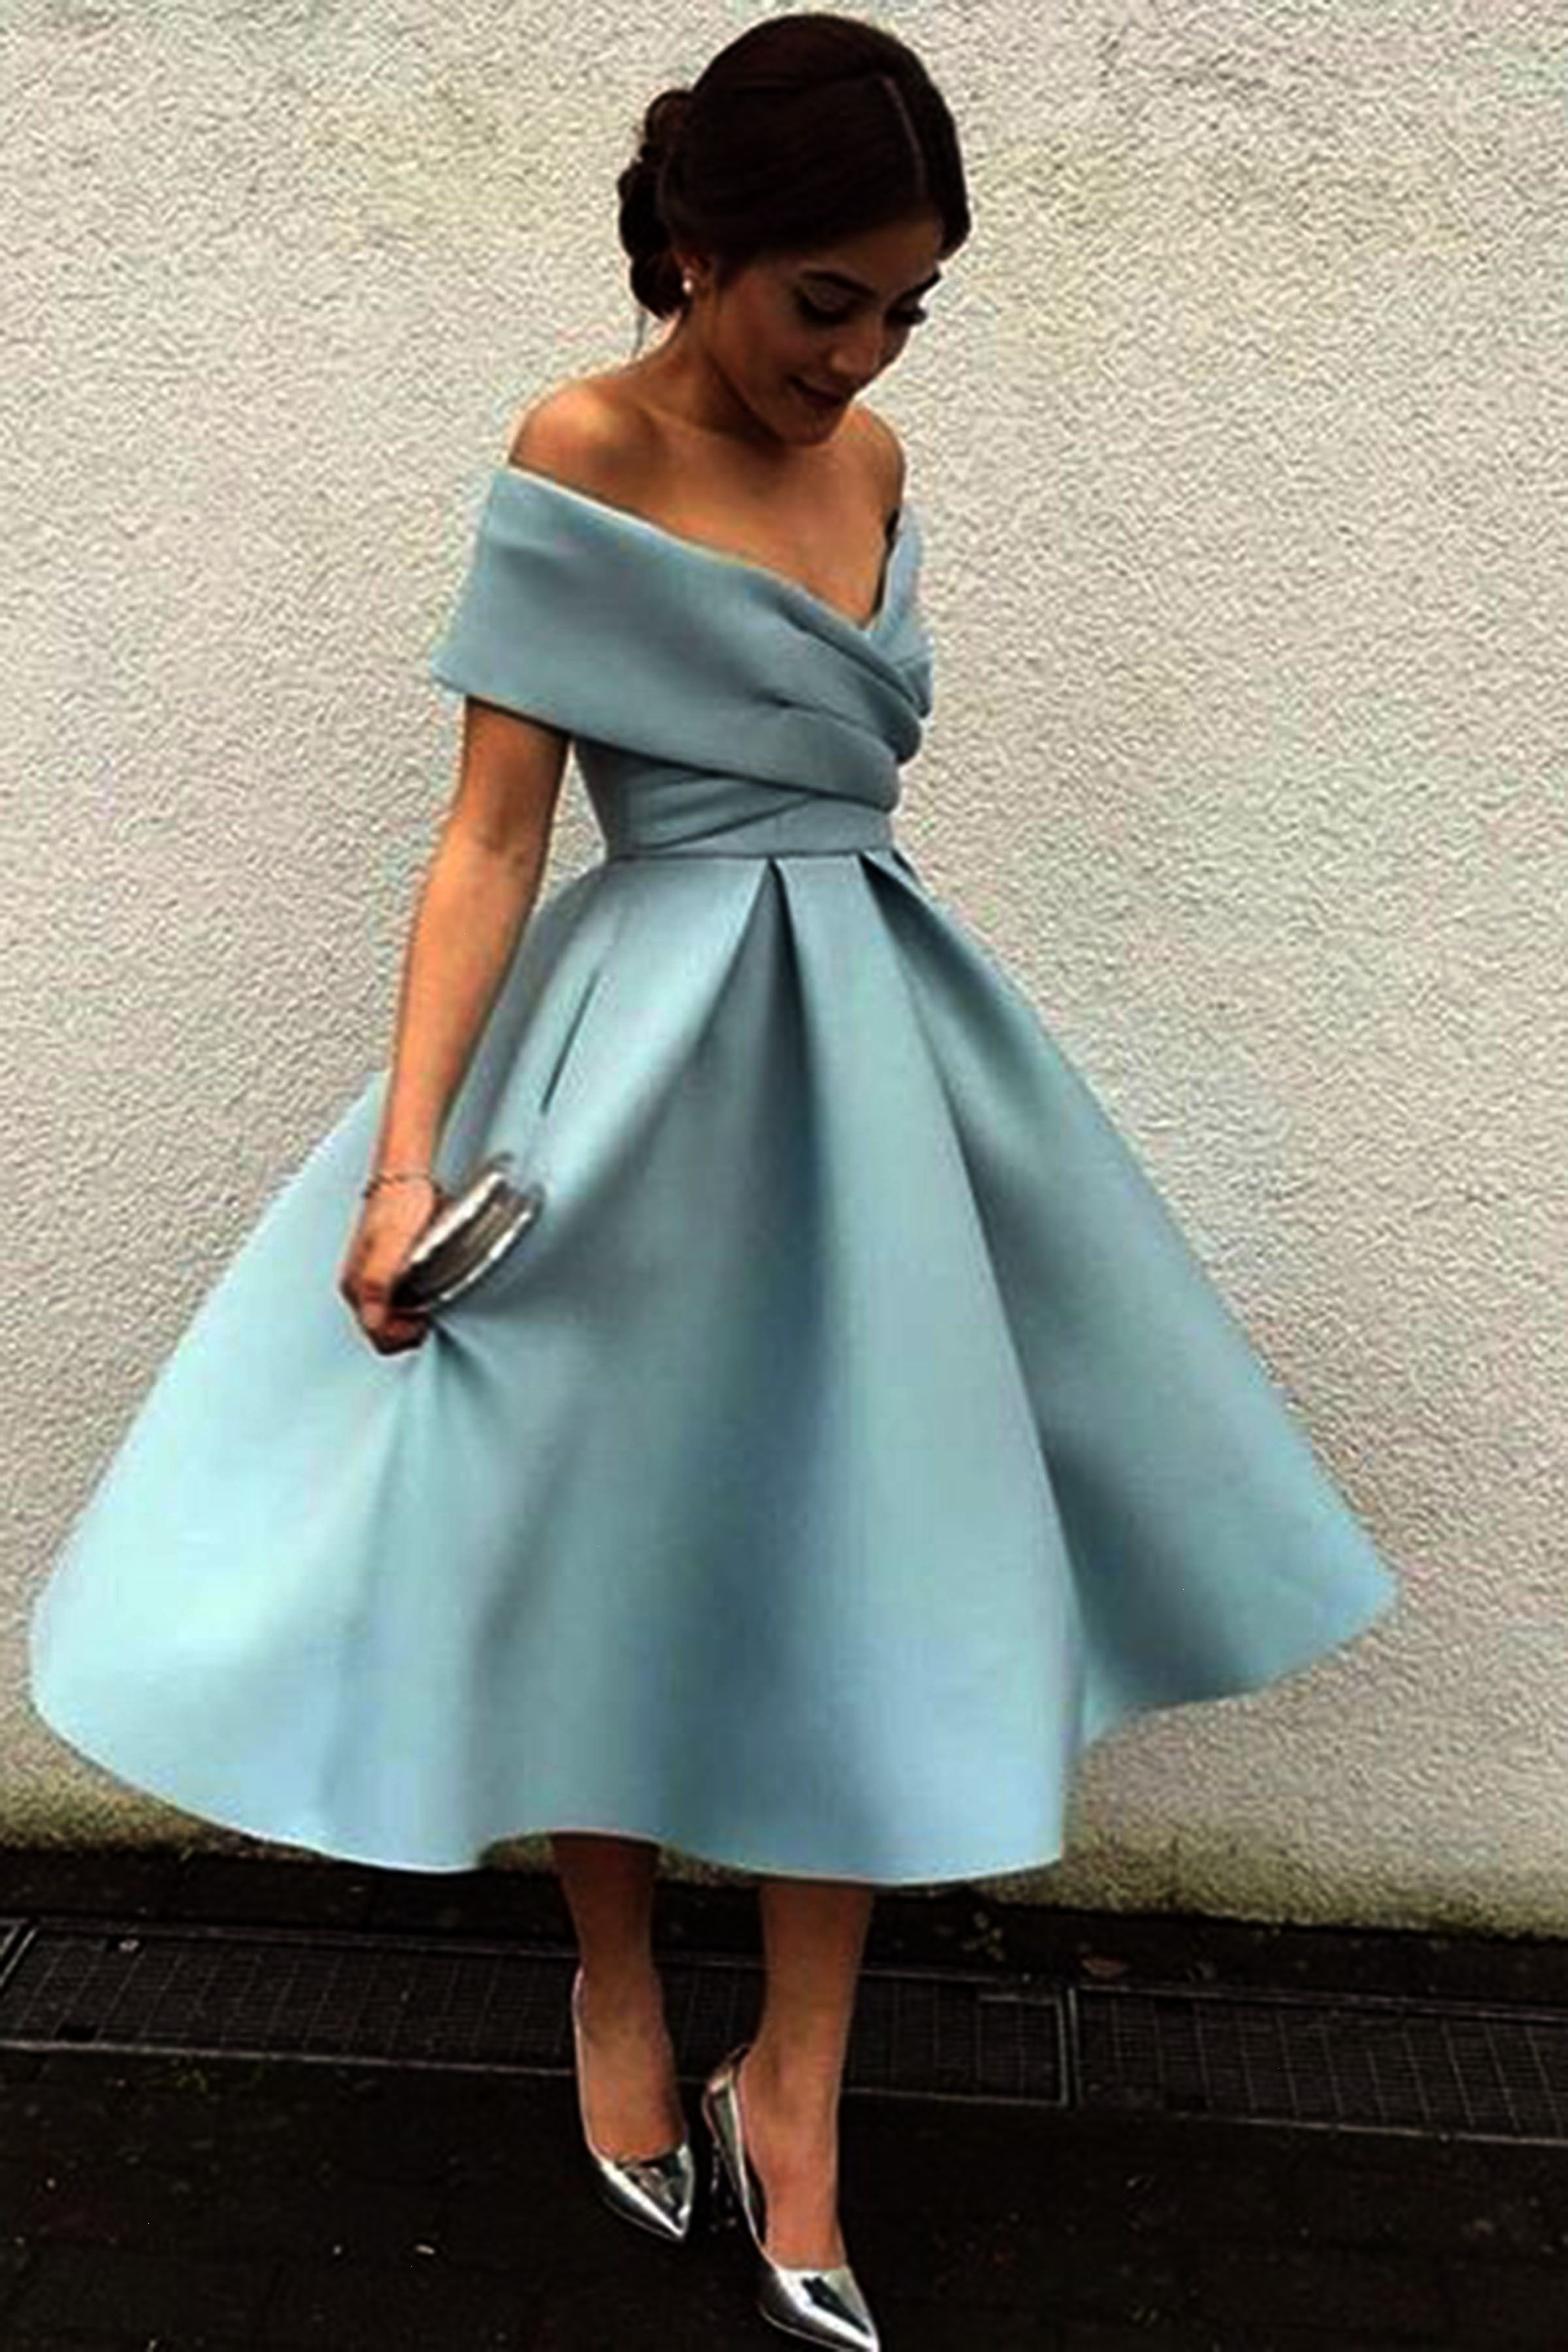 Wonderful ueue Ball Gown Dresses Near Me collect Evening Dresses